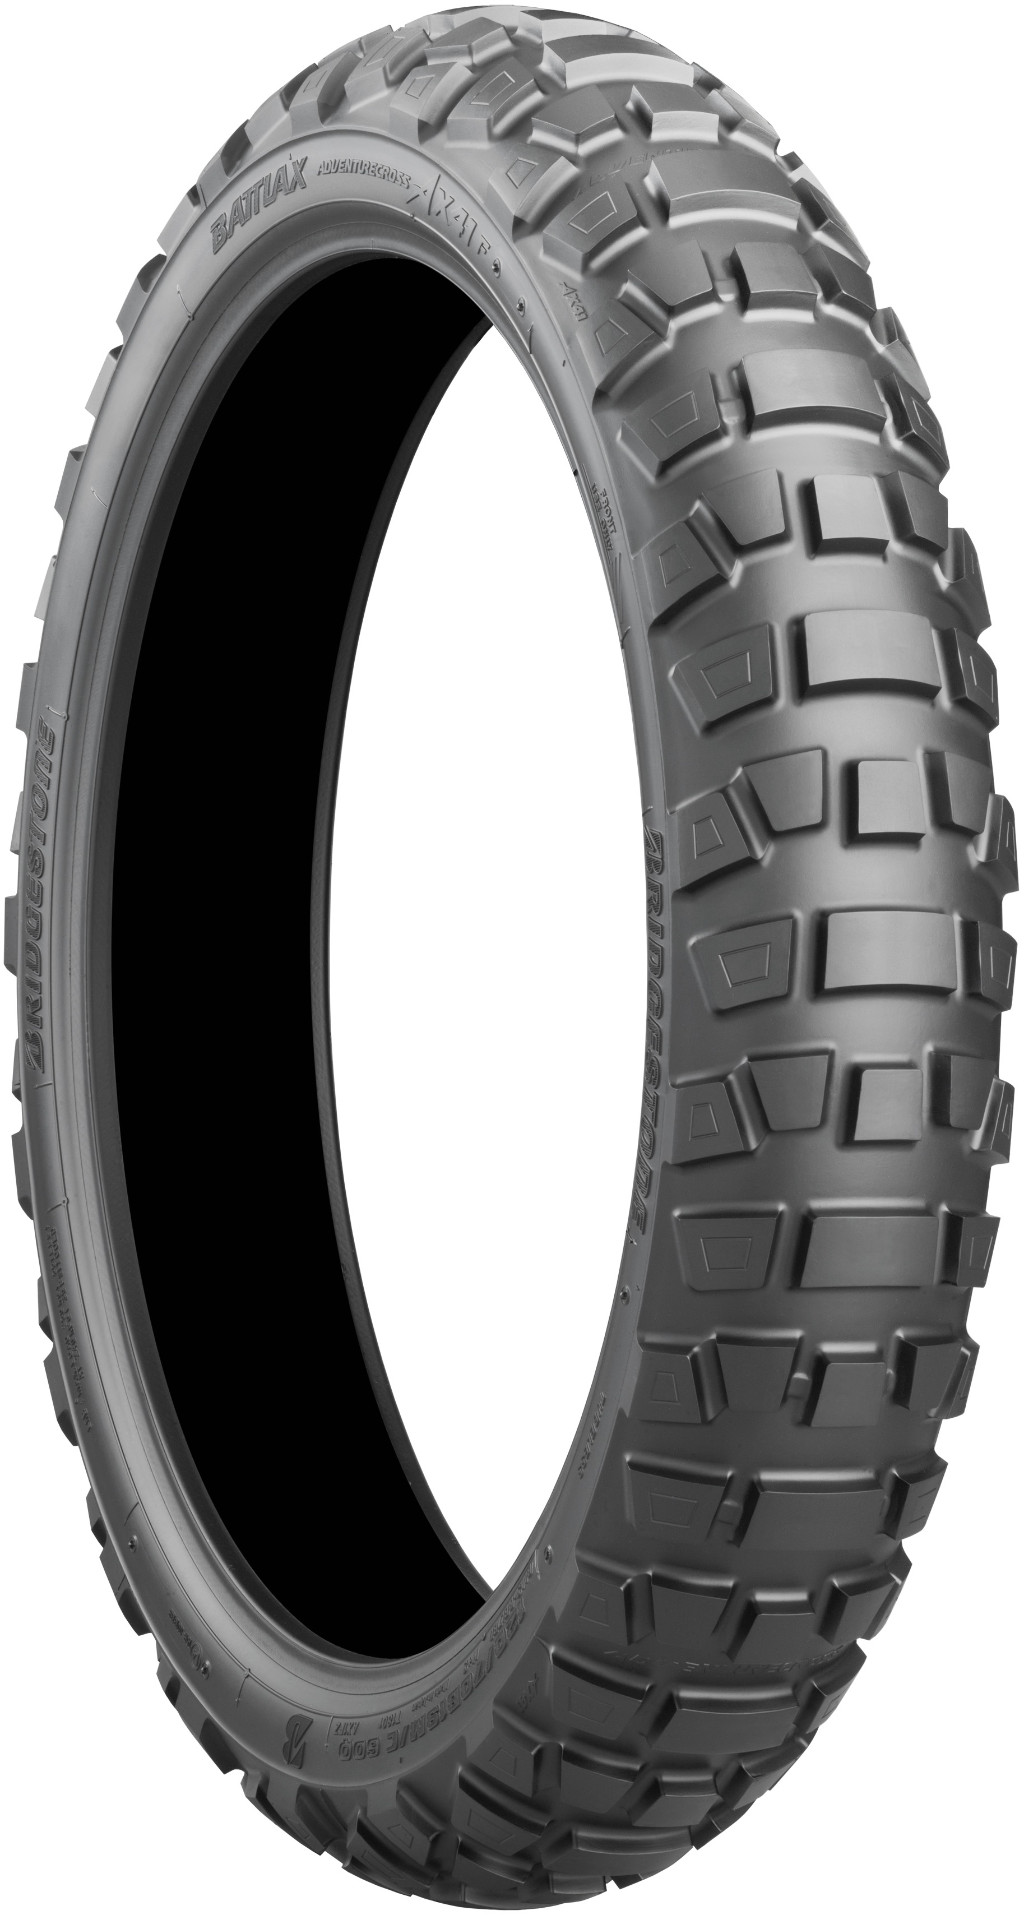 BRIDGESTONE BATTLAX ADVENTURECROSS AX41 [110/80B 19M/C 59Q] Tire